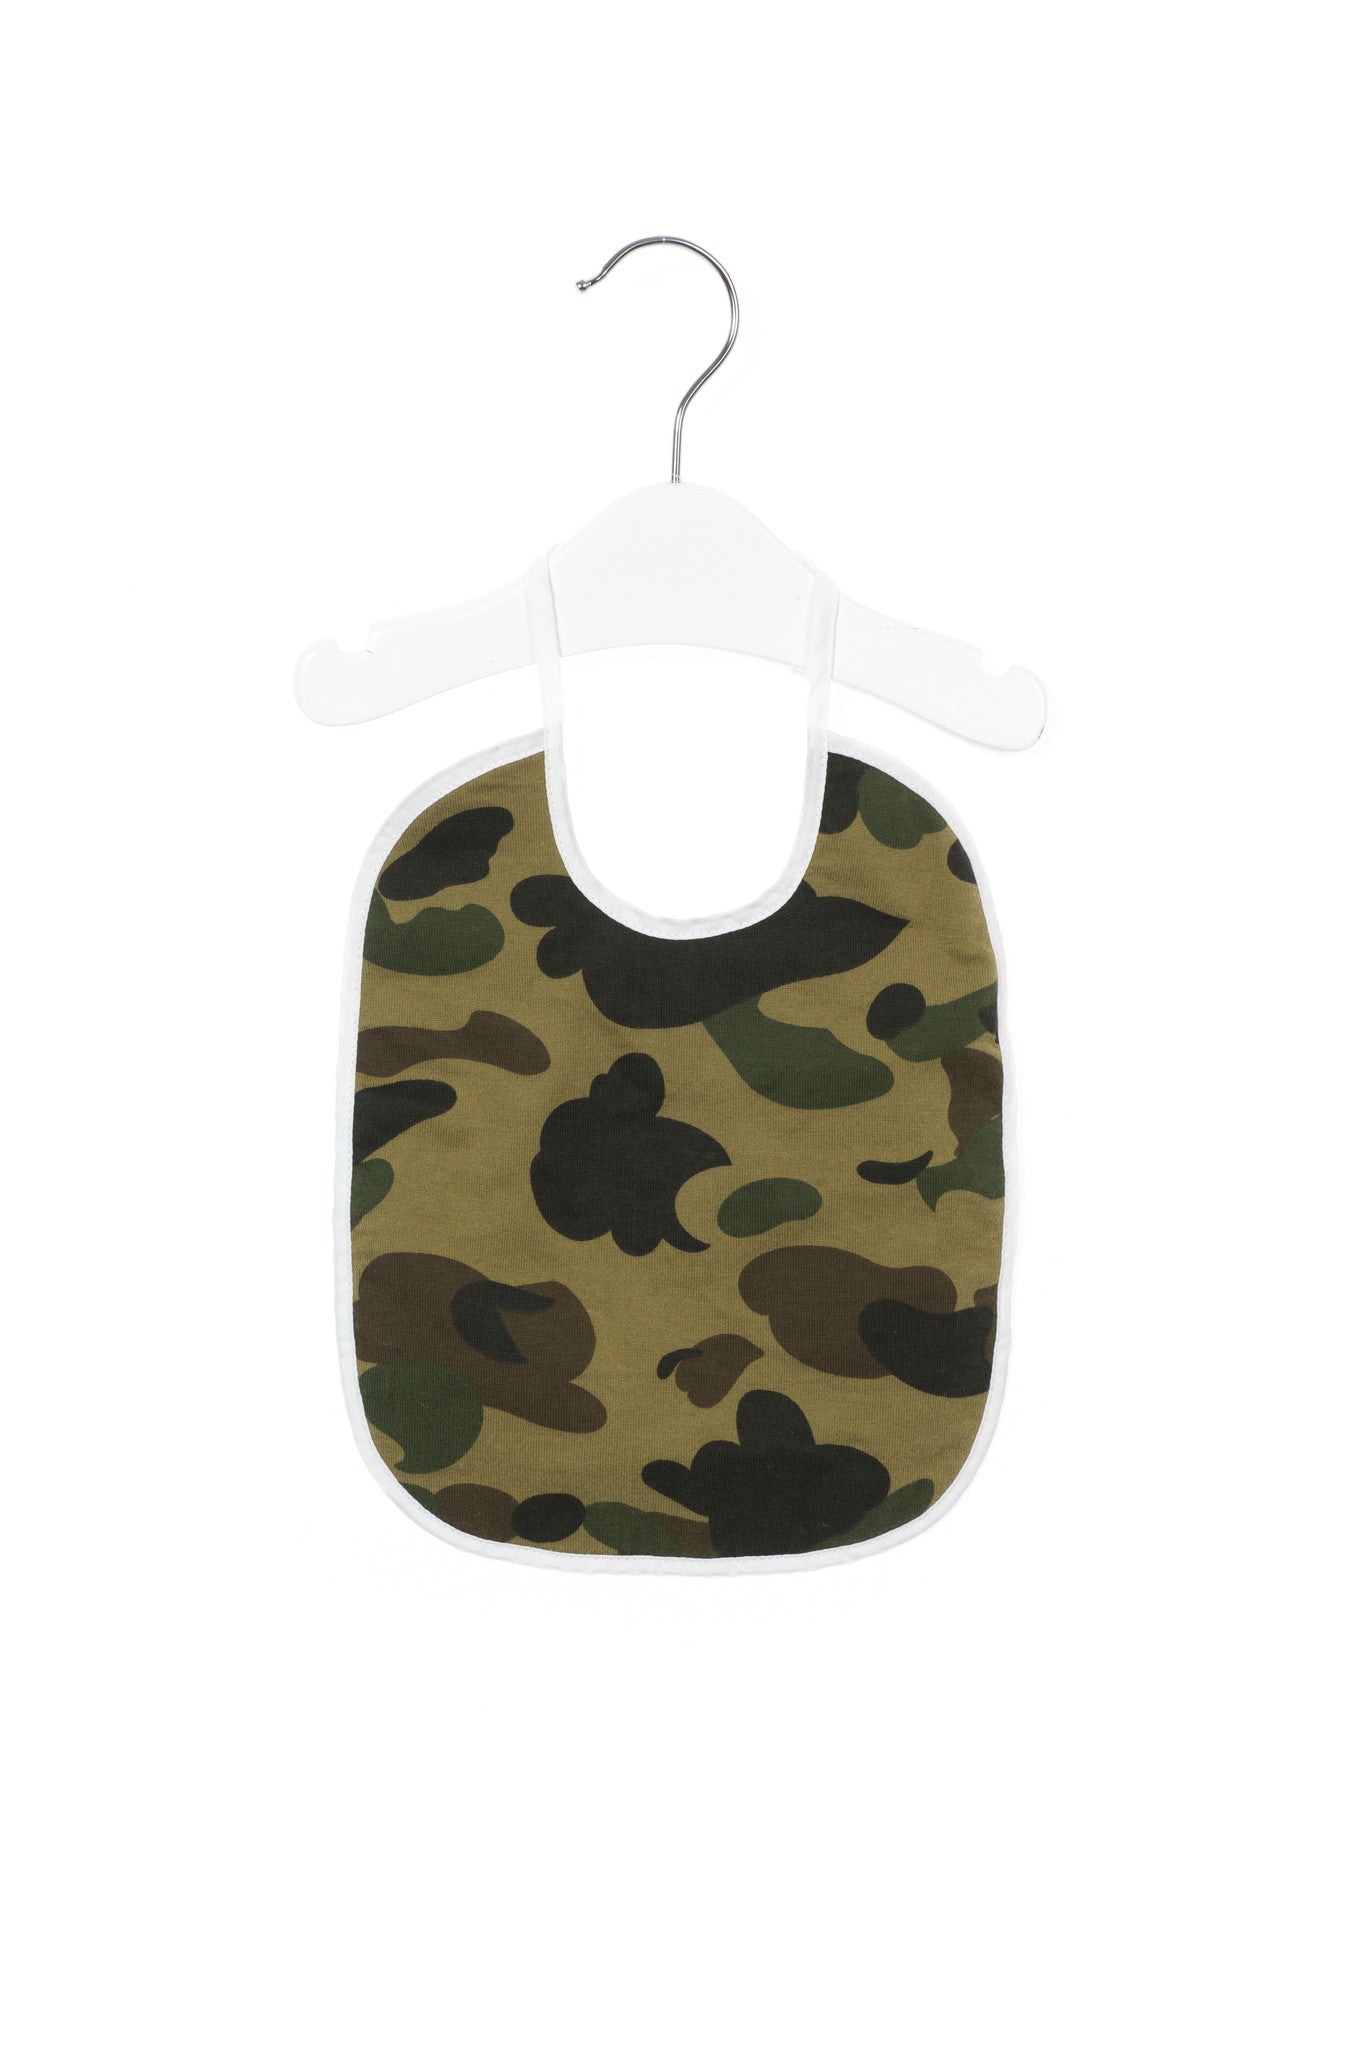 10001059 BAPE Baby~Bodysuit, Shorts and Bib 12-18M at Retykle